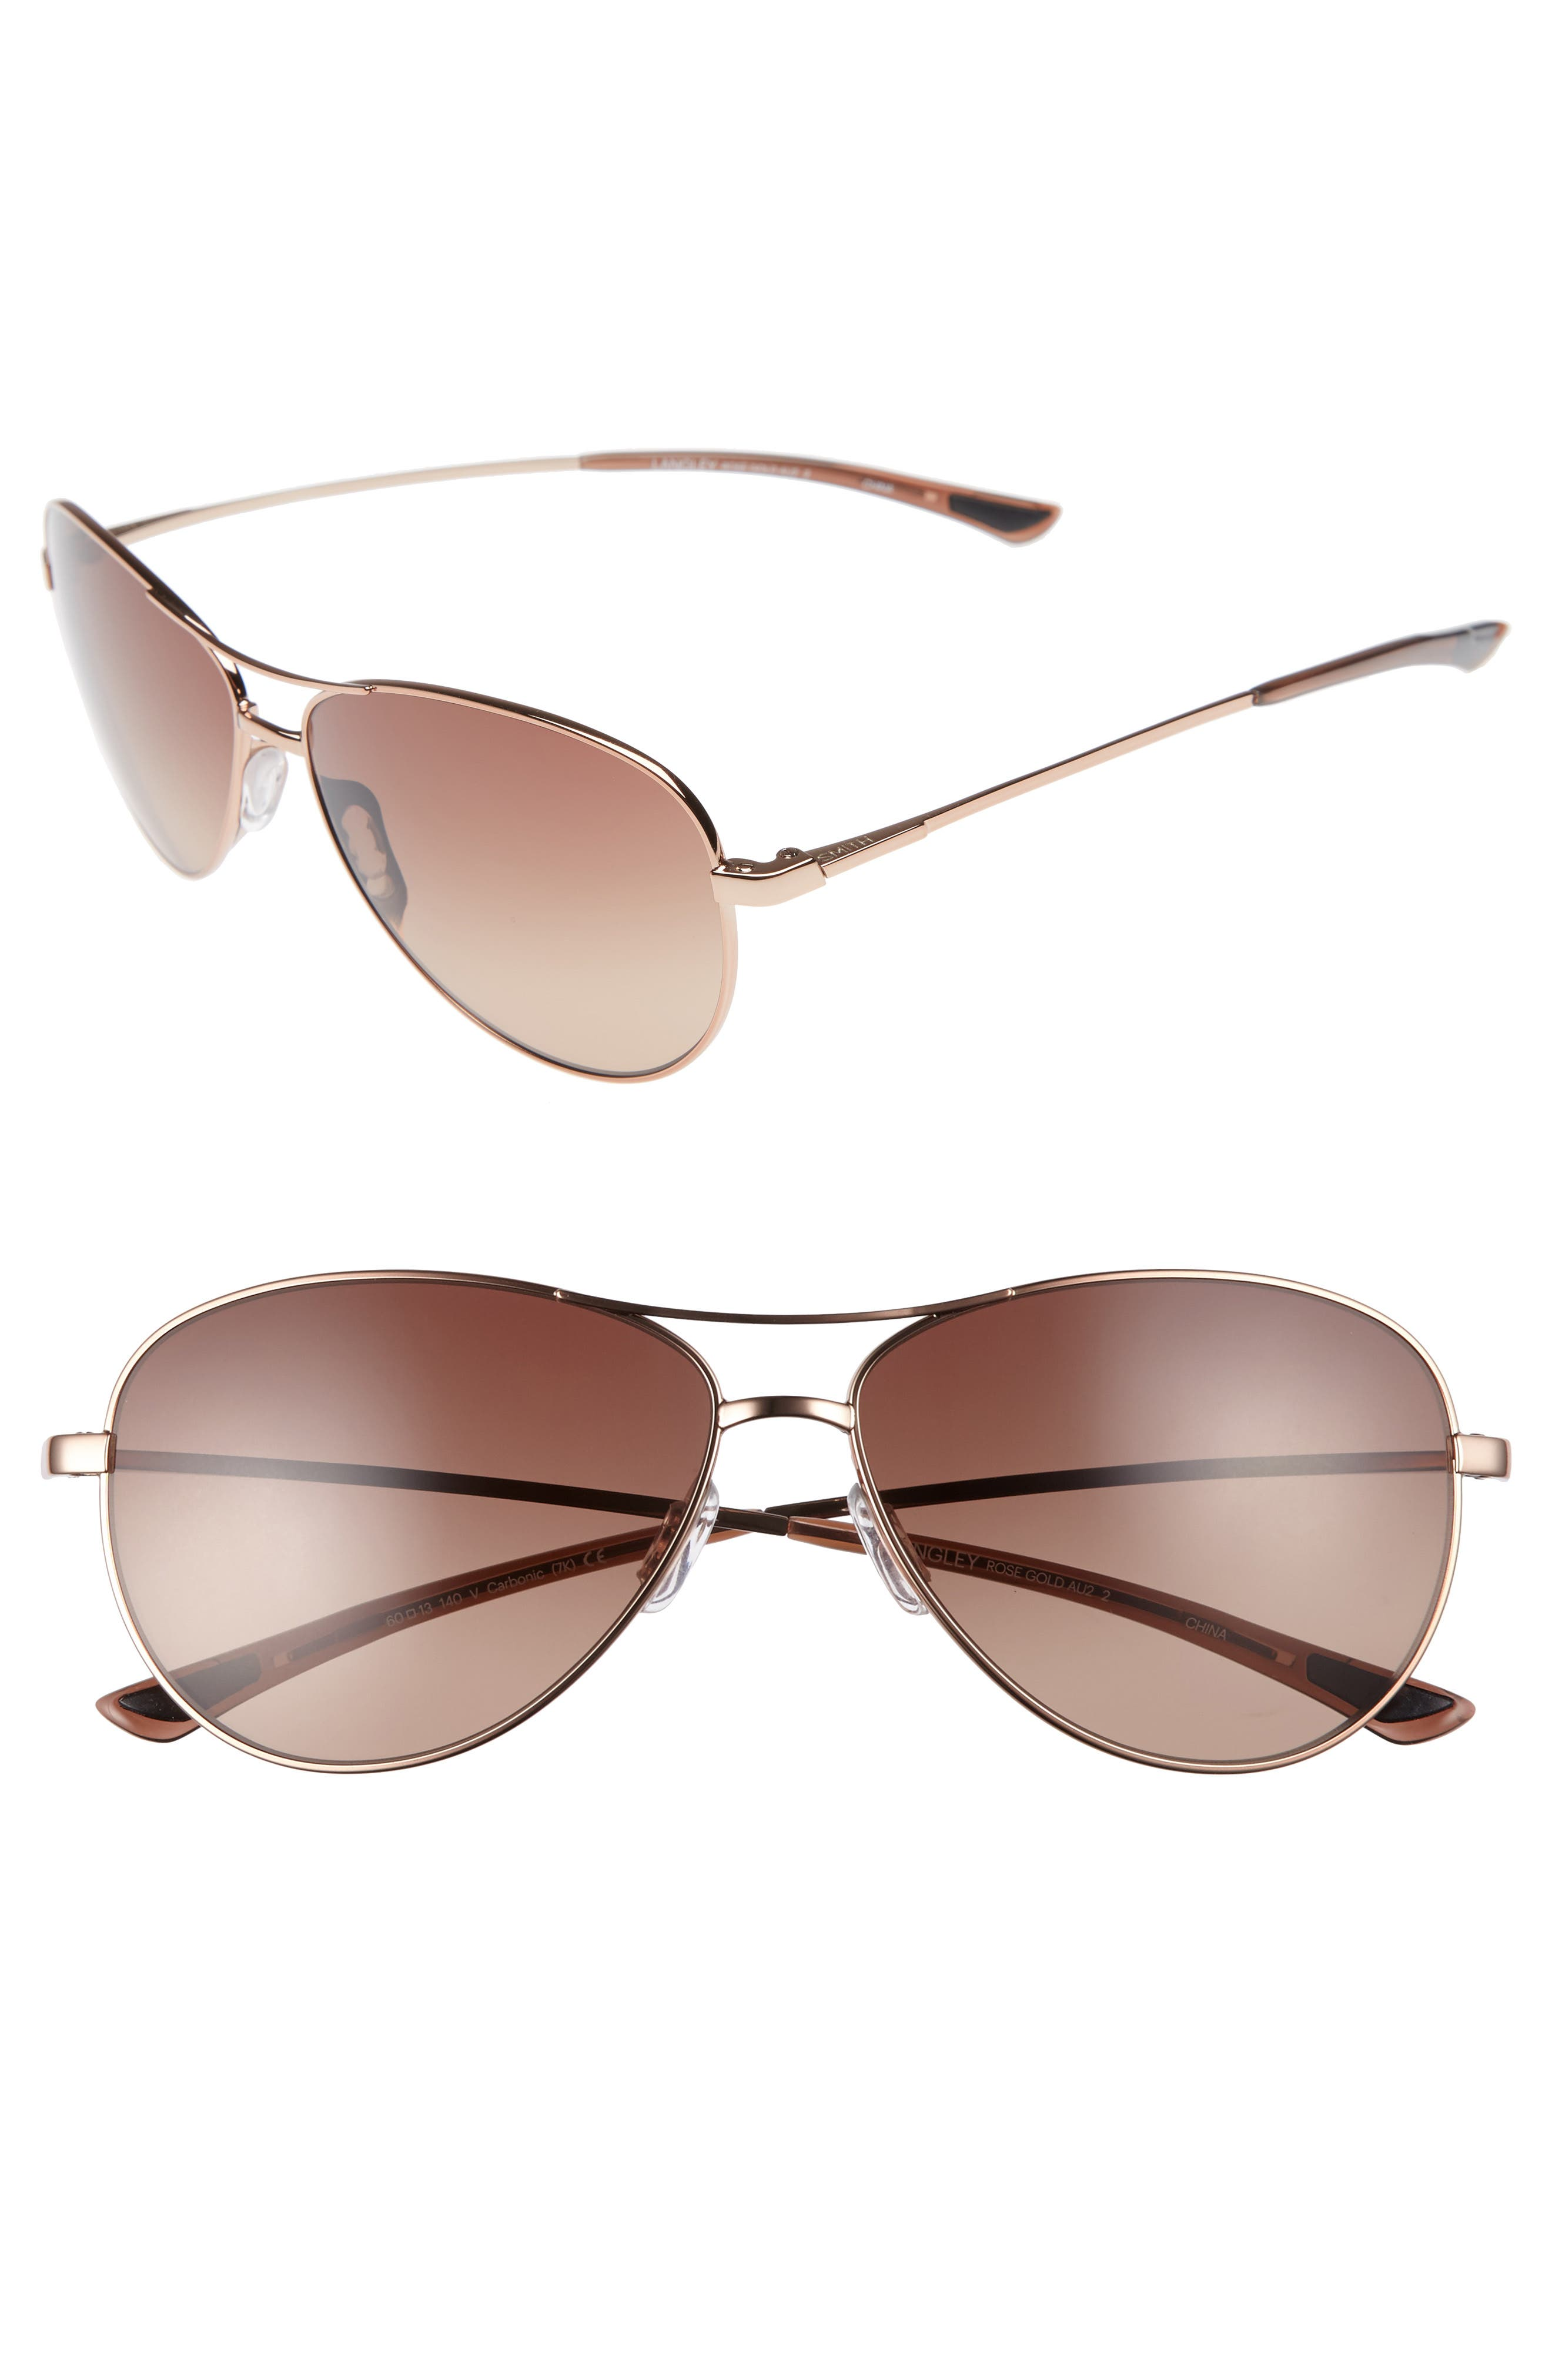 'LANGLEY' 60MM AVIATOR SUNGLASSES - ROSE GOLD/ SIENNA